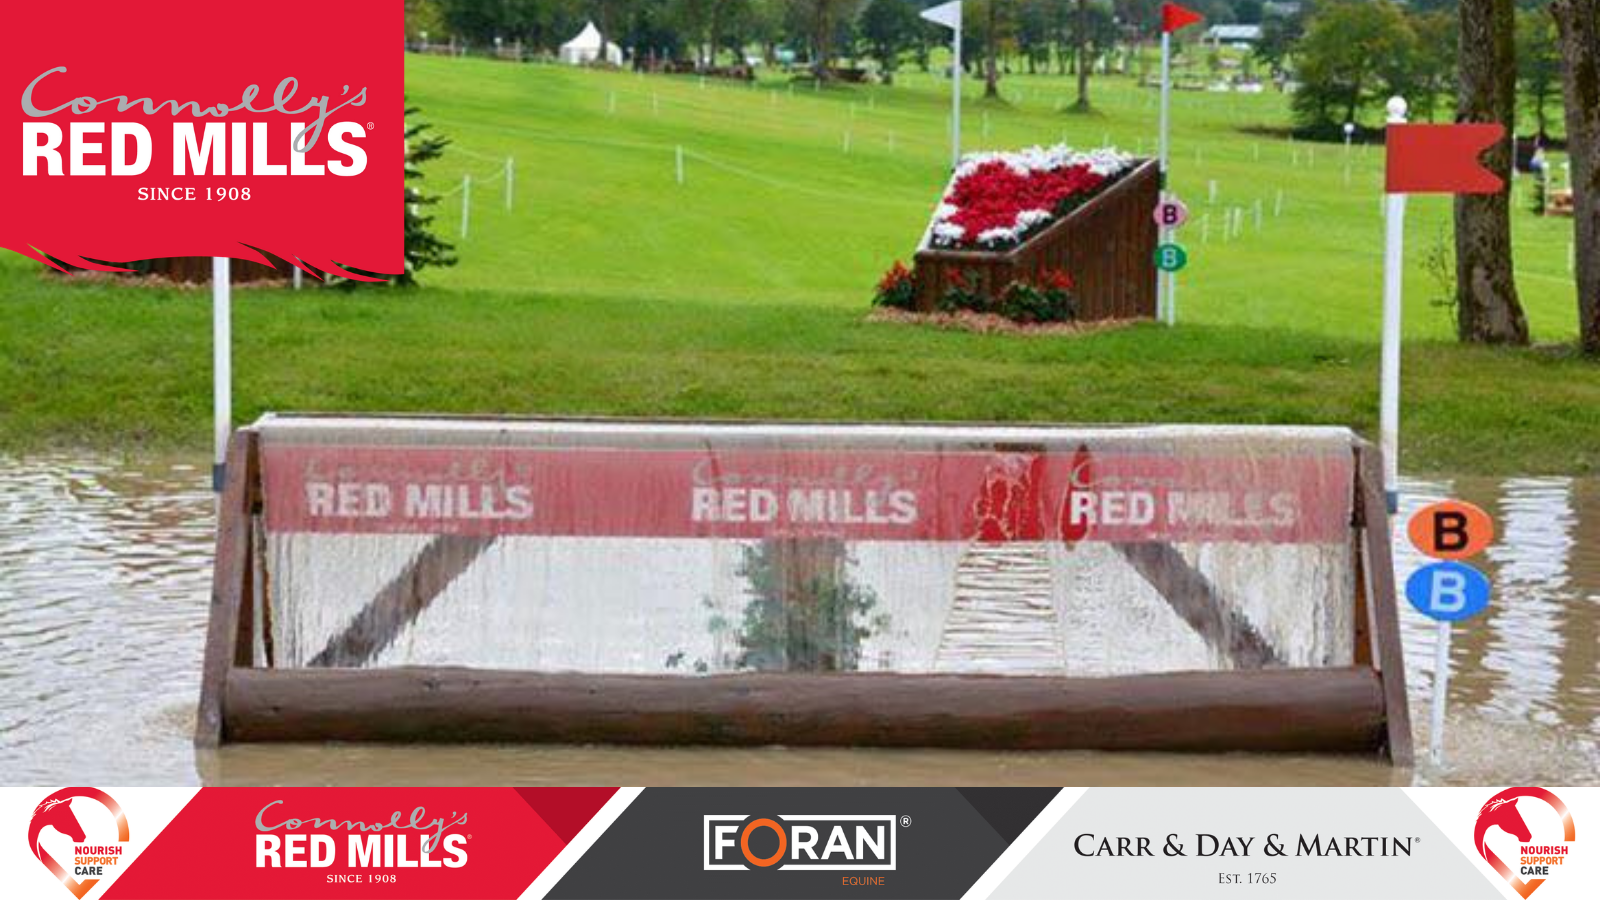 Connolly's RED MILLS, Foran Equine, and Carr & Day & Martin – The Official Nutrition and Care Partners to Millstreet International Horse Trials